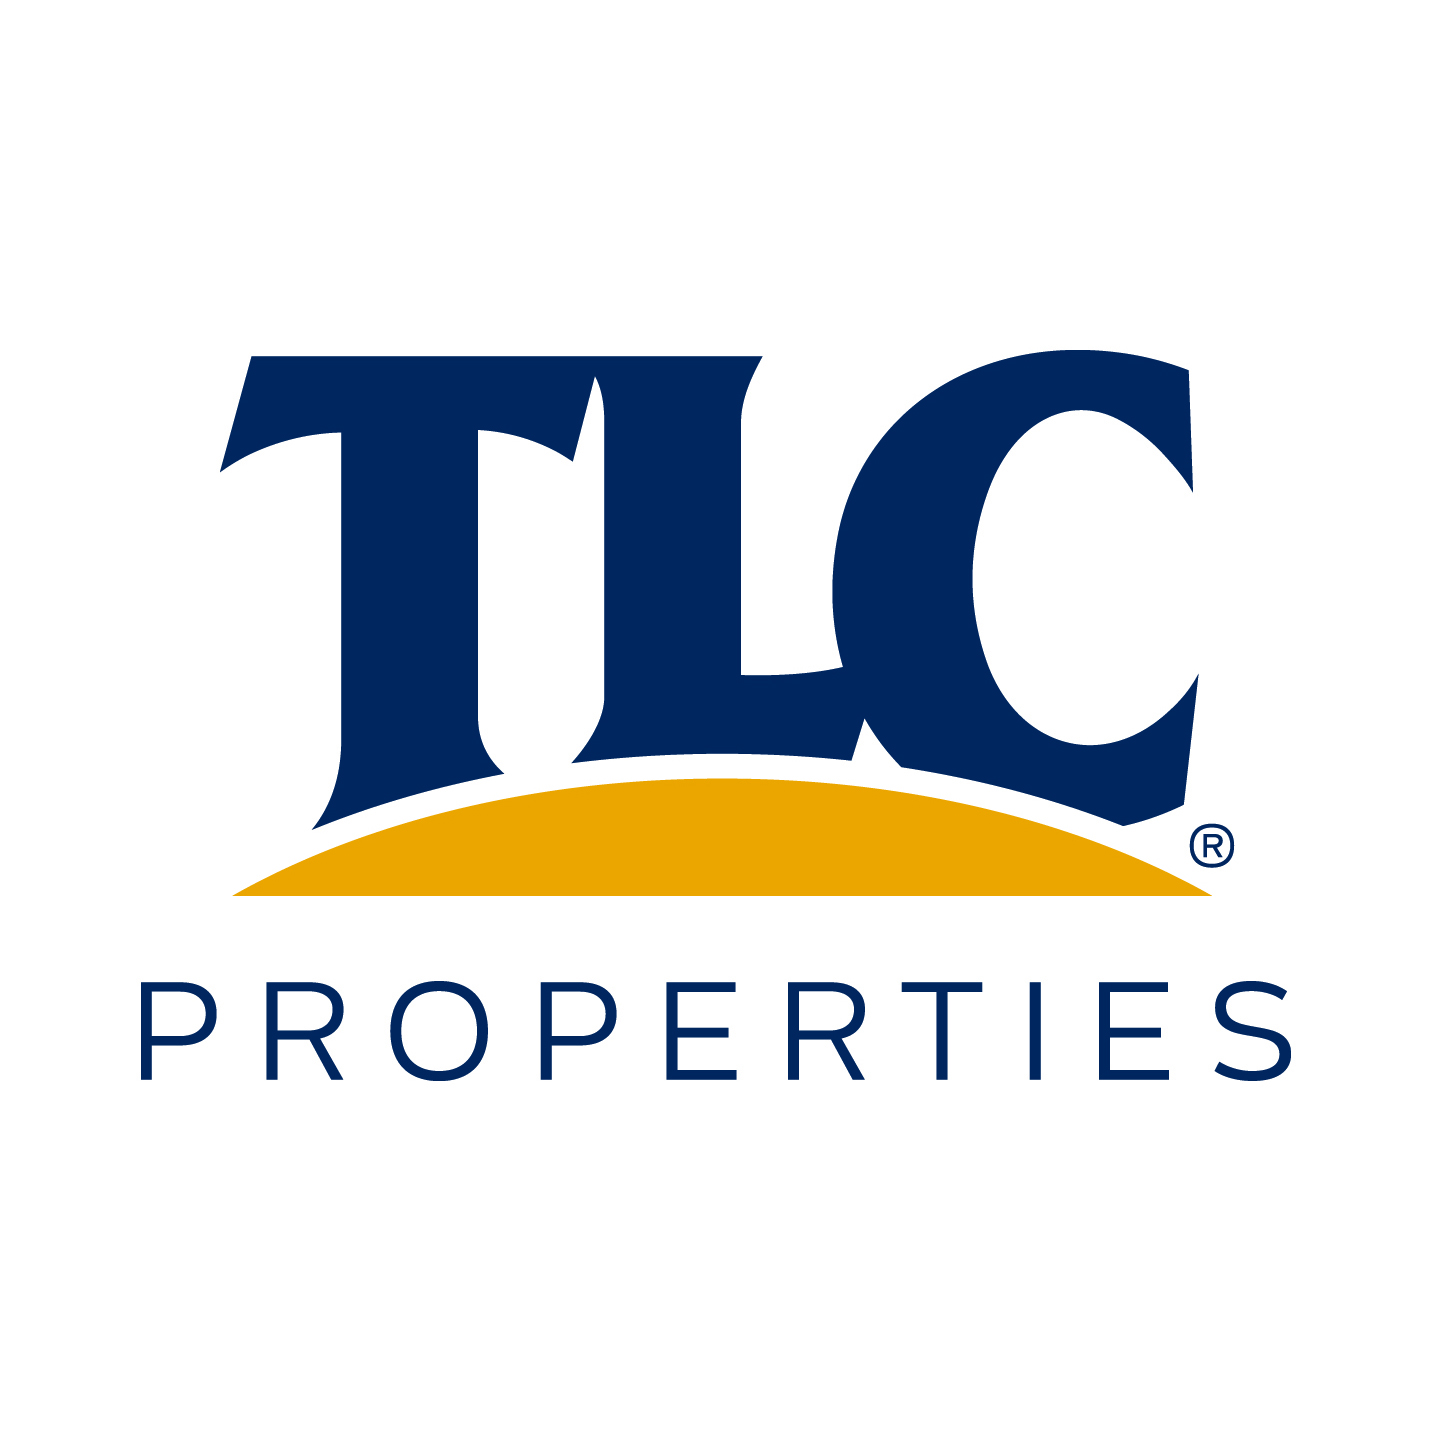 tlc properties.jpg